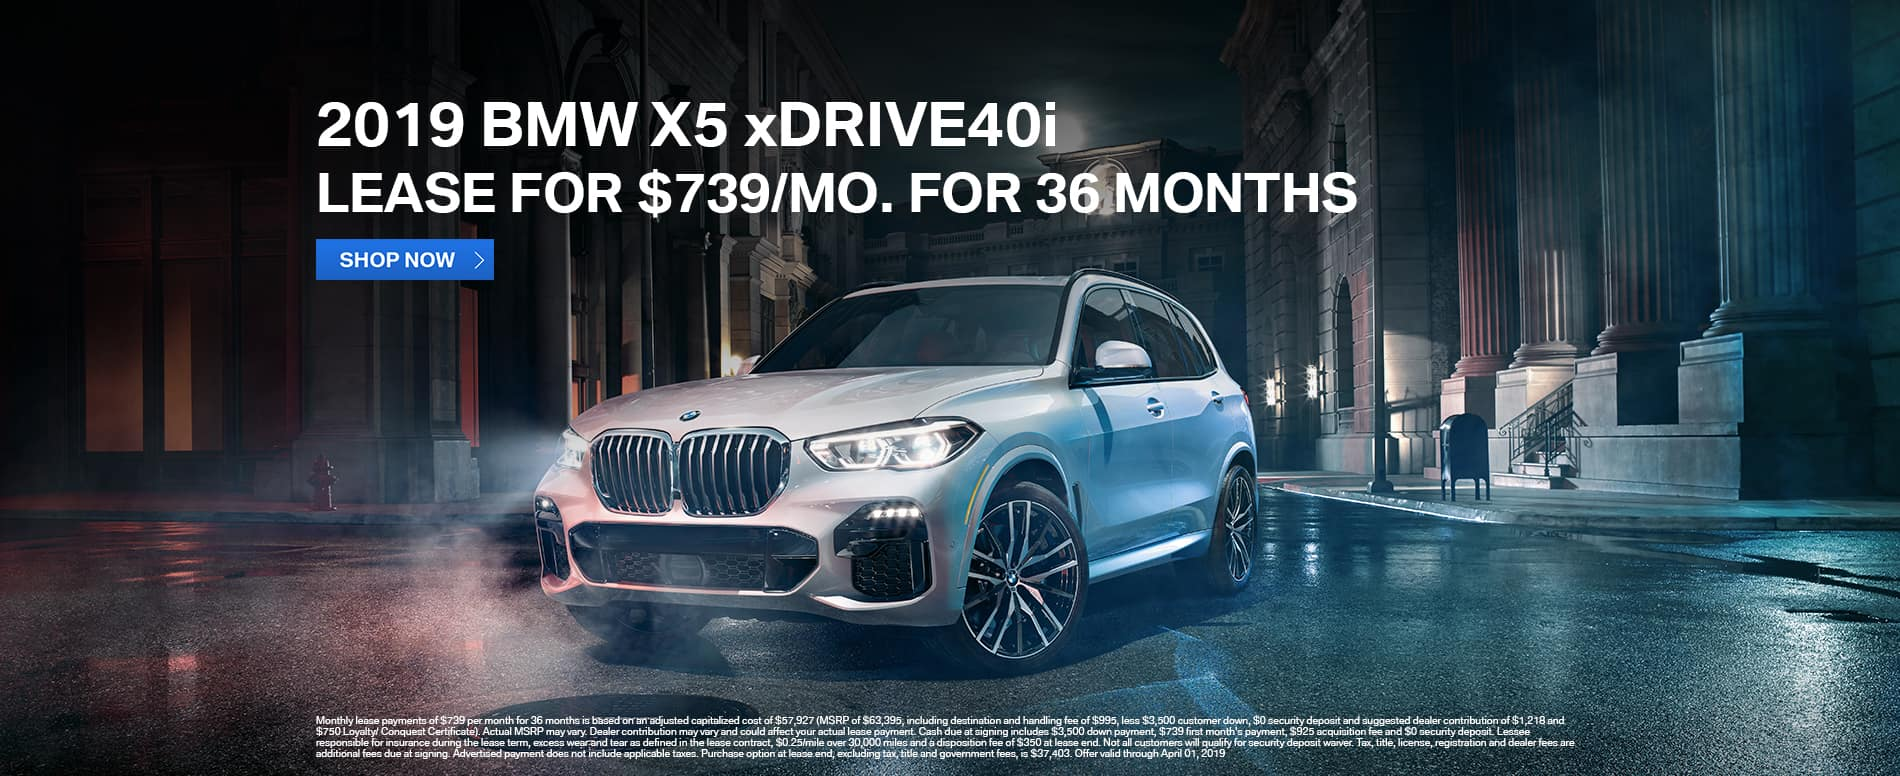 lease-2019-x5-xdrive40i-for-739-mo-beaumont-tx